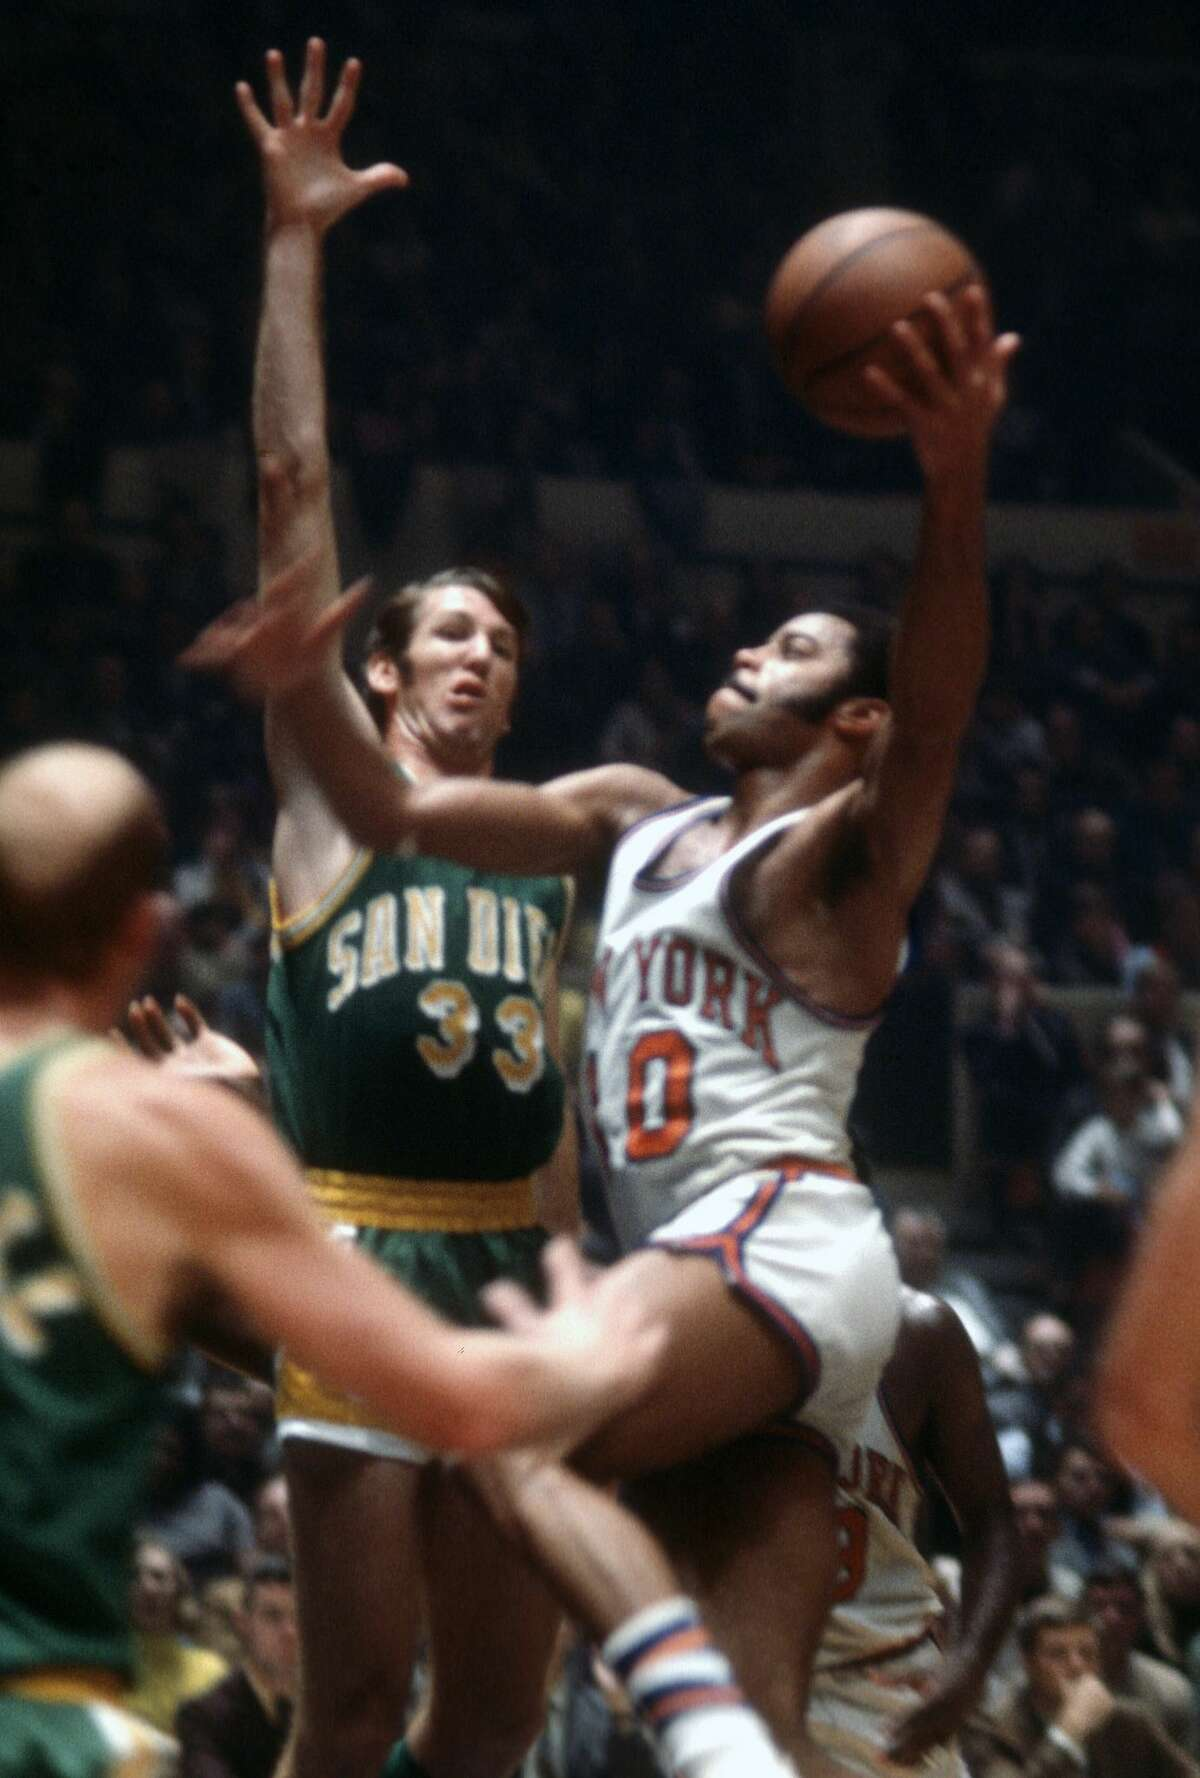 1966-1971: San Diego Rockets era Before moving to Houston for the 1971-72 season, the Rockets were the San Diego Rockets and wore green and gold uniforms.